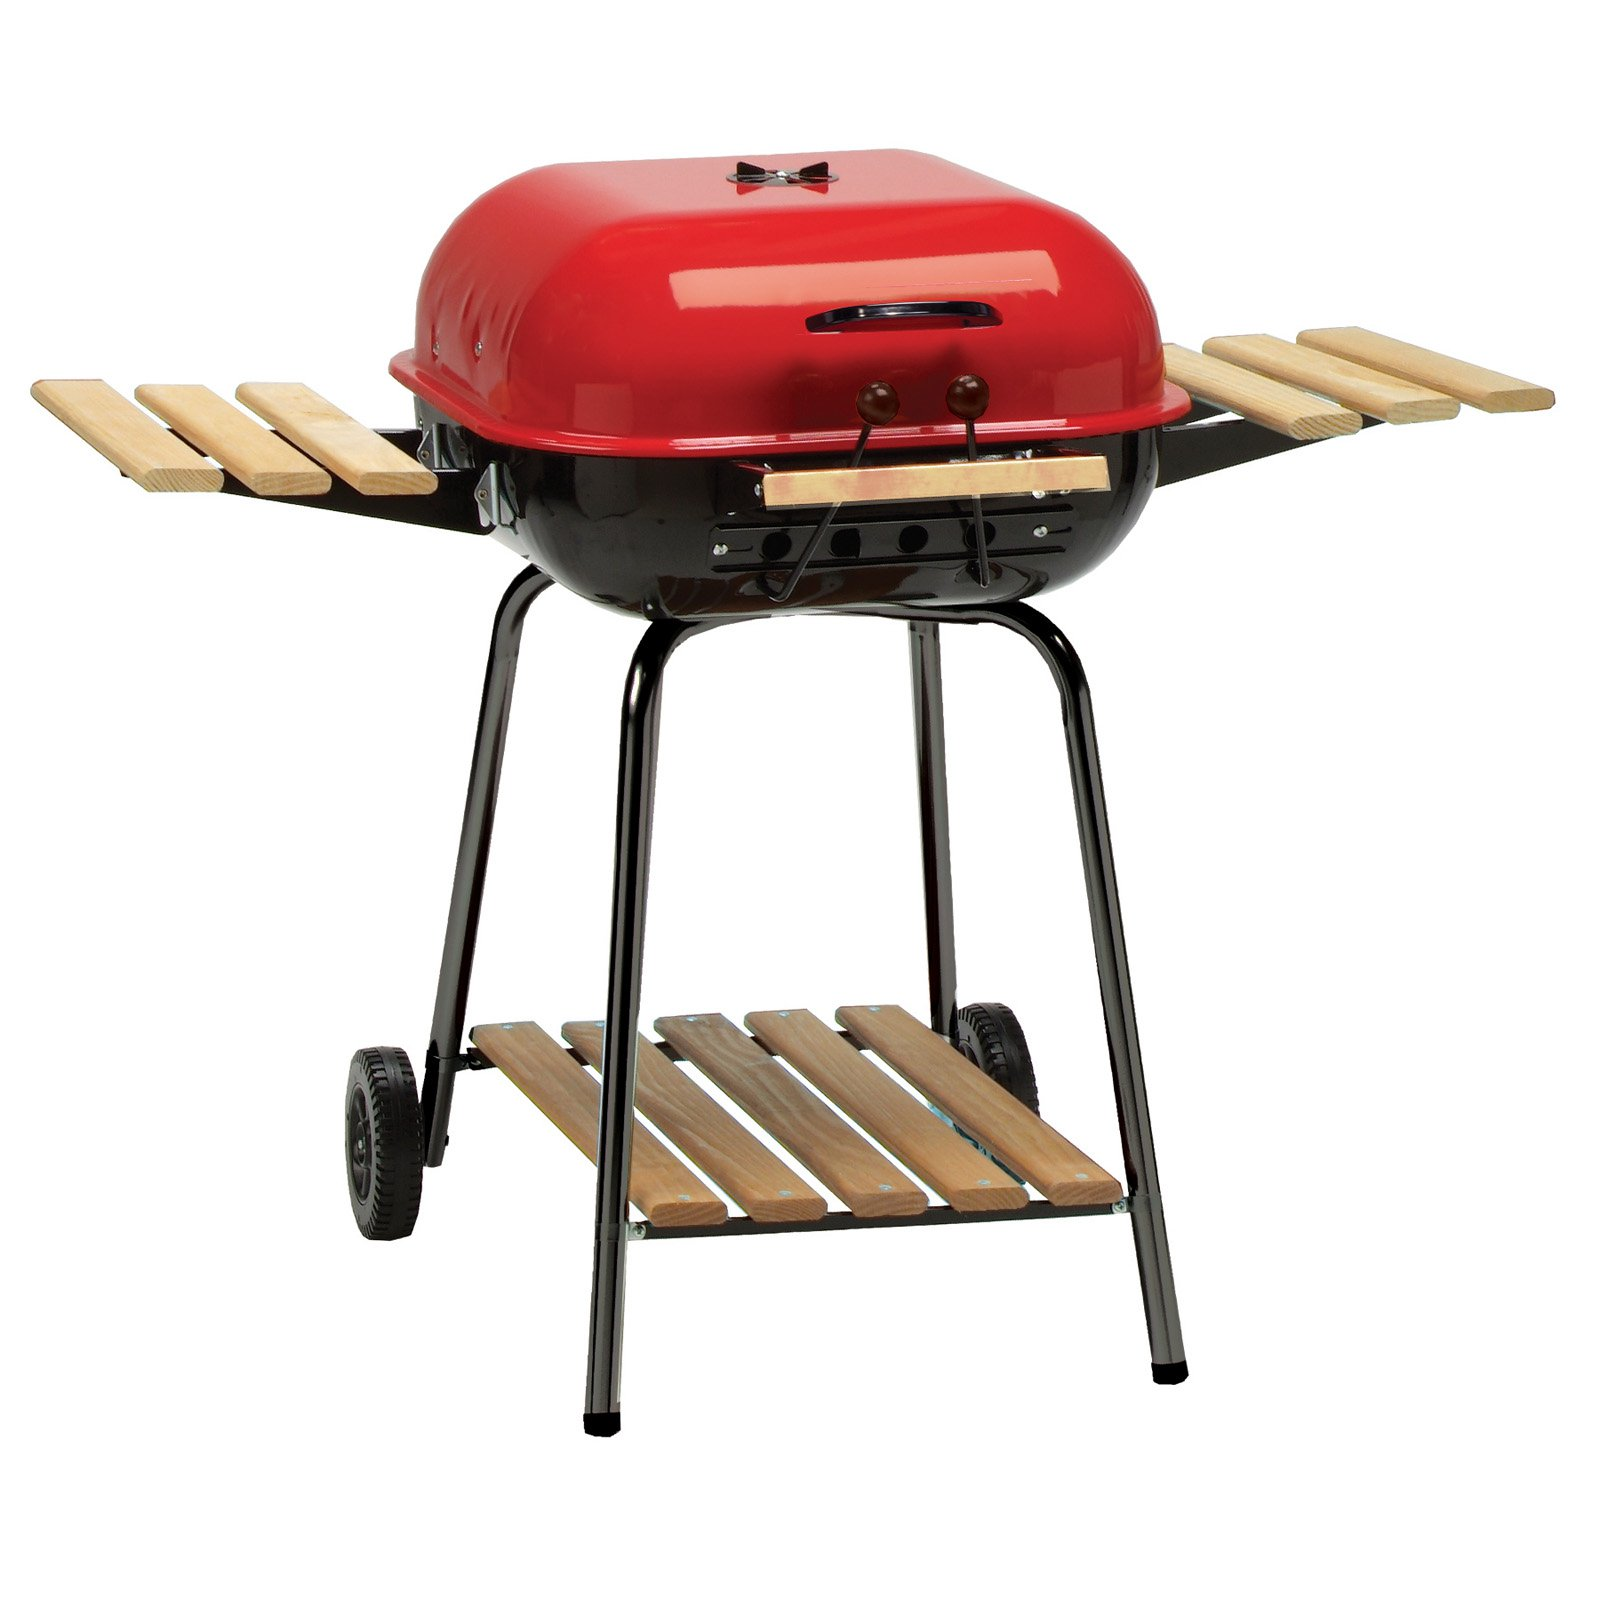 meco americana inch charcoal bbq grill with adjustable cooking outdoor side table for grate and composite wood folding tables red round accent tablecloth weathered furniture small